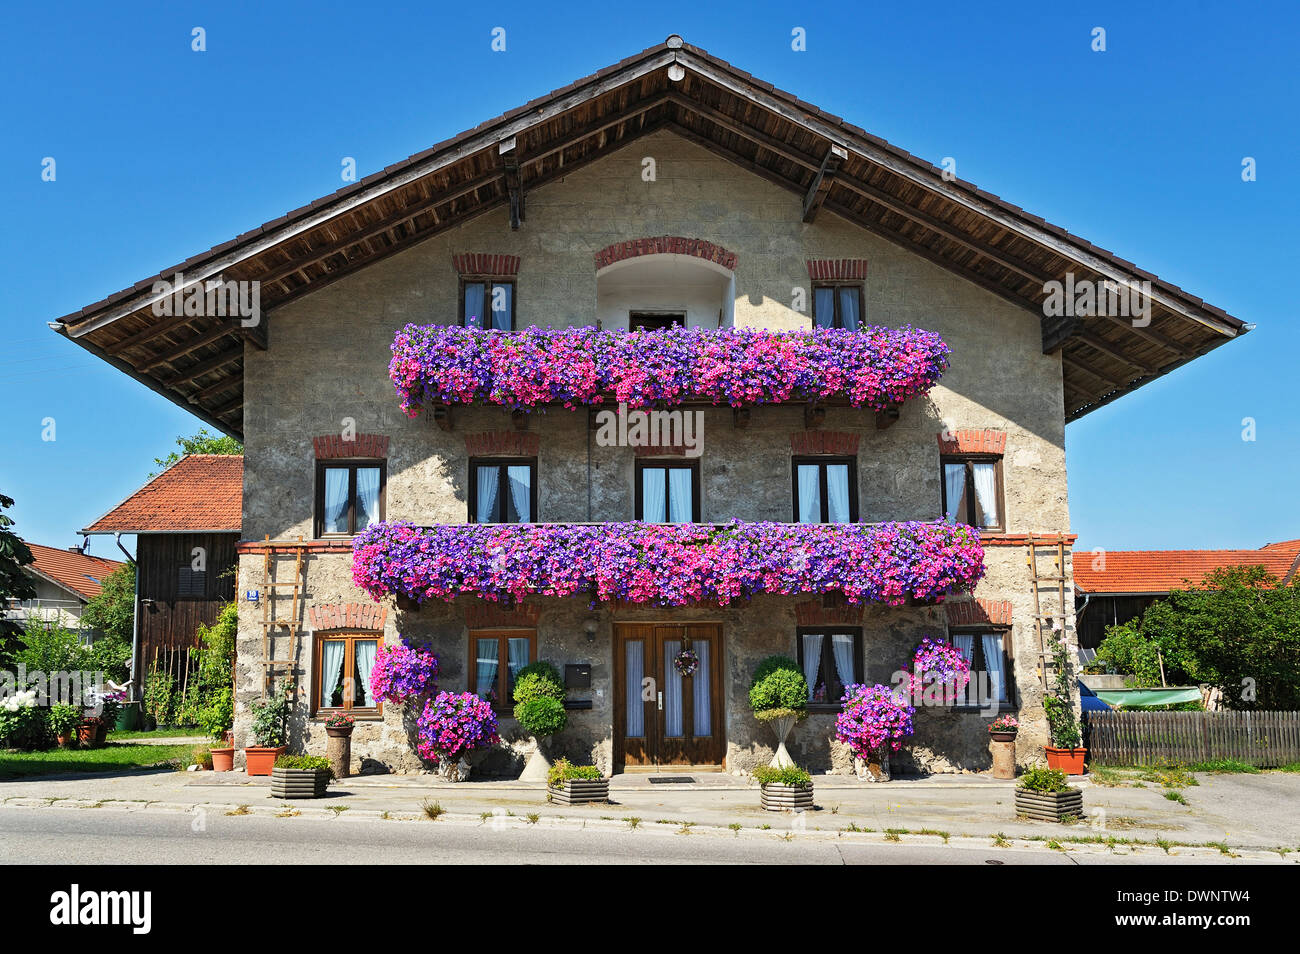 Farm, balconies with geraniums, Schlacht, Upper Bavaria, Bavaria, Germany - Stock Image